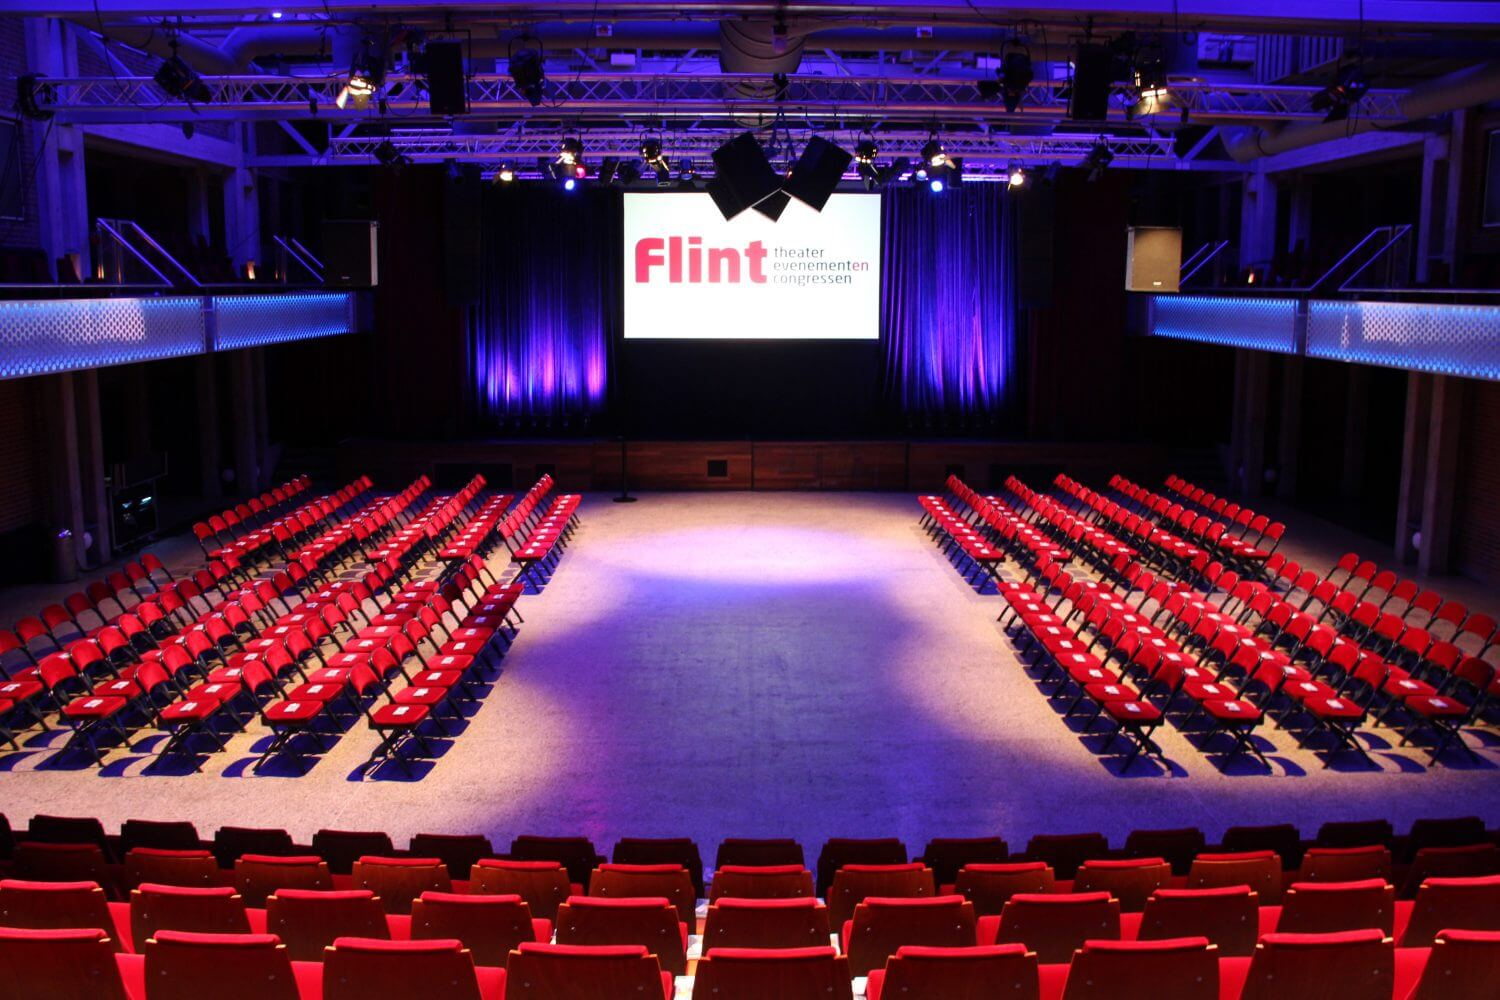 flint-theater-evenementen-congressen-av-brothers-2